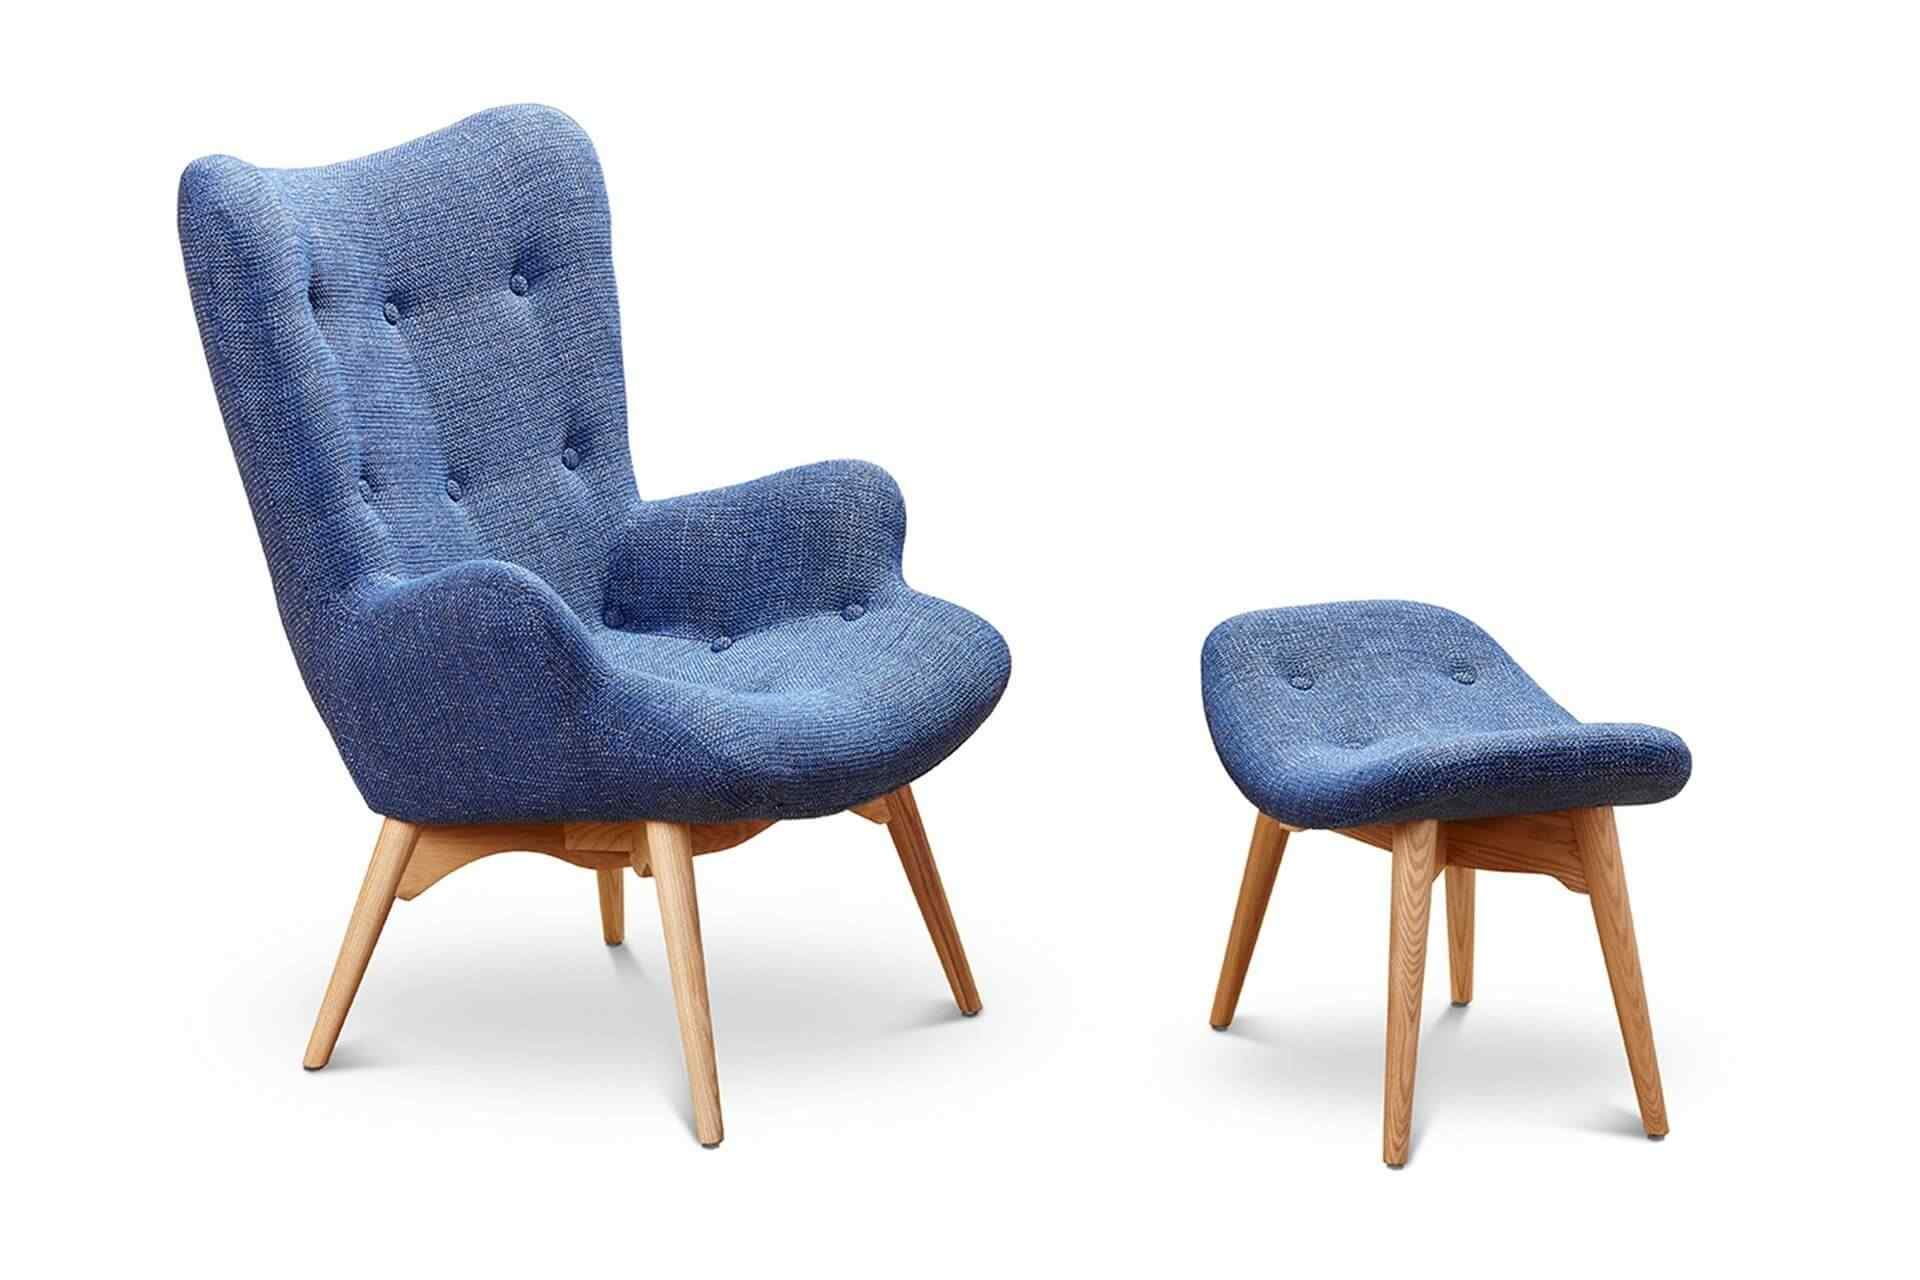 Kiwi Designs is our newest furniture Brand